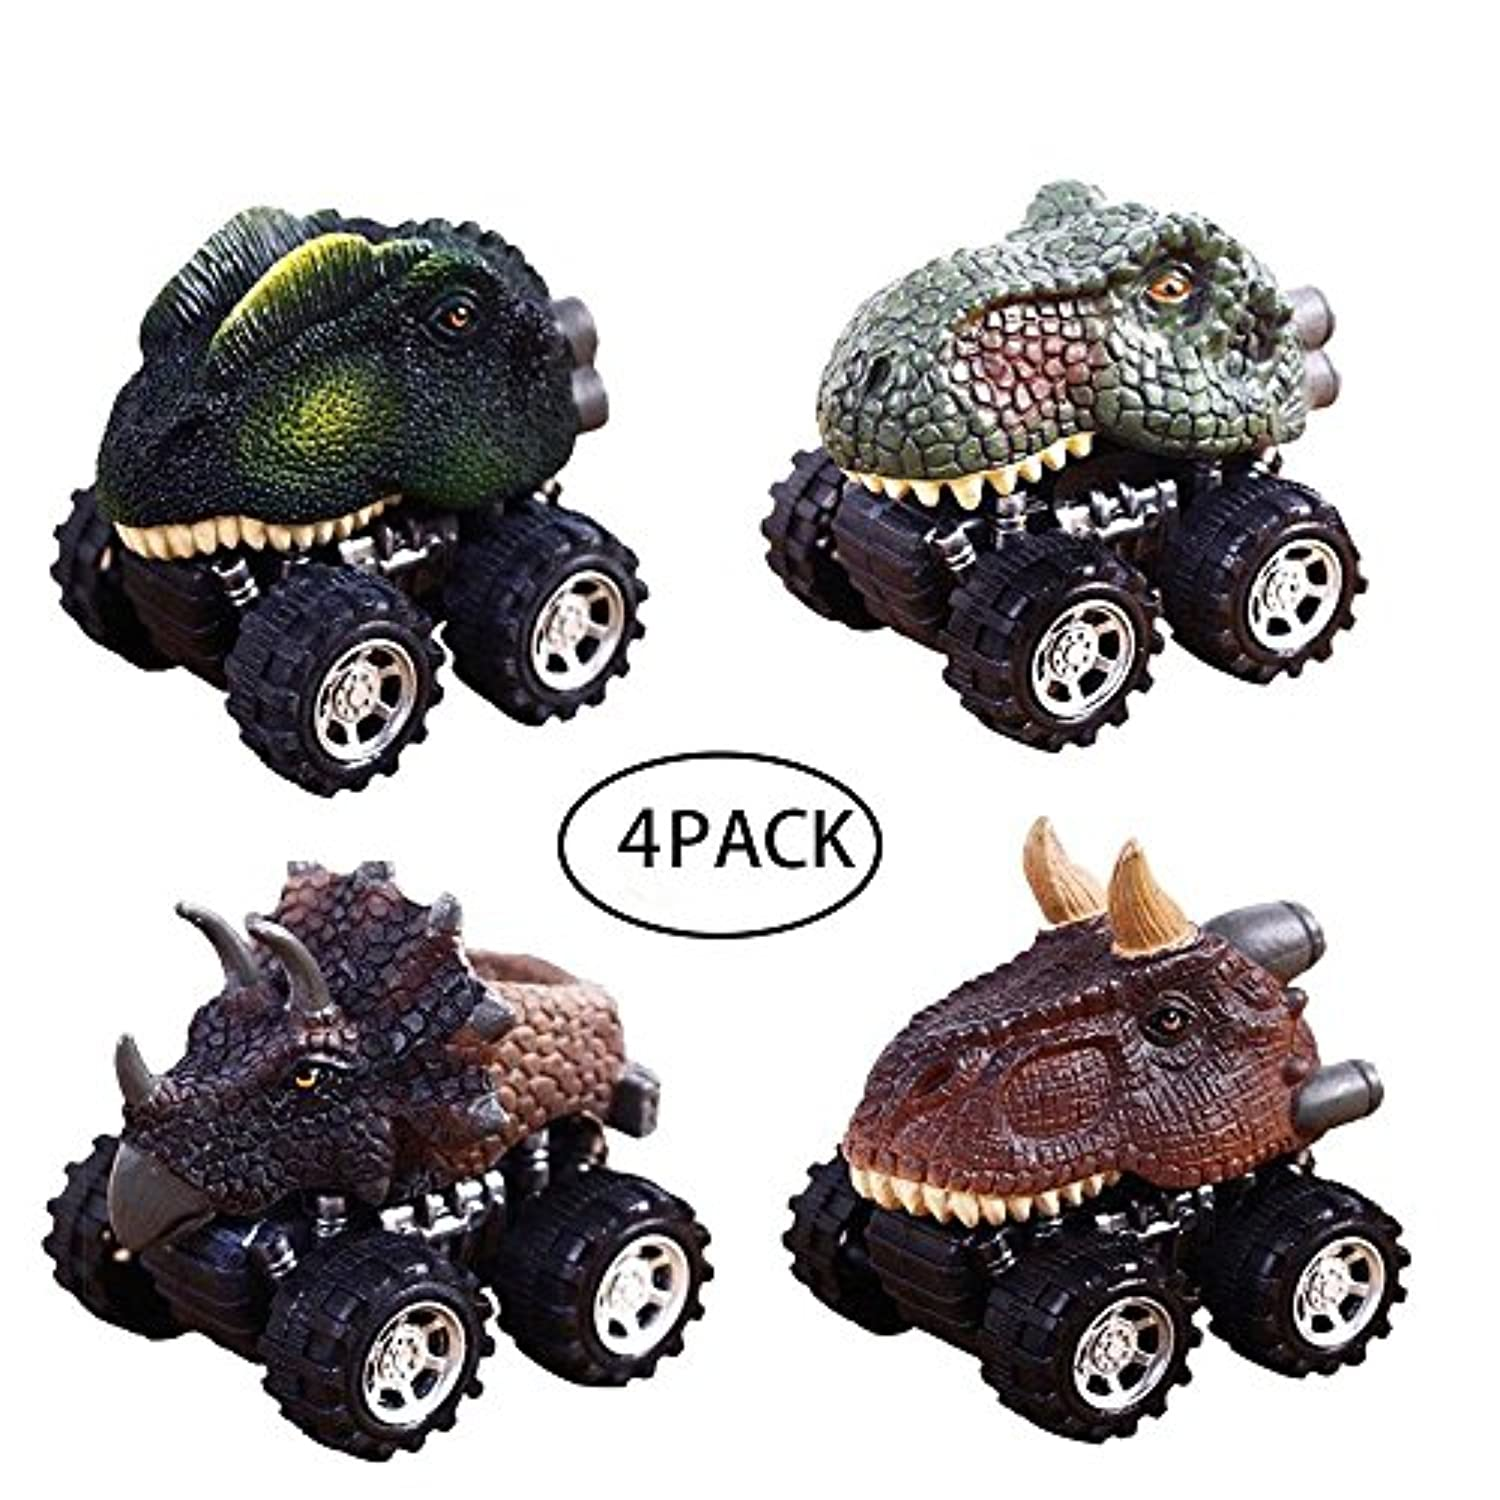 Dinosaur Pull Back Car Vehicle Toy Playsets動物恐竜おもちゃトラックwith Bigホイールタイヤデザインfor Kids Toddlers Funパックof 4